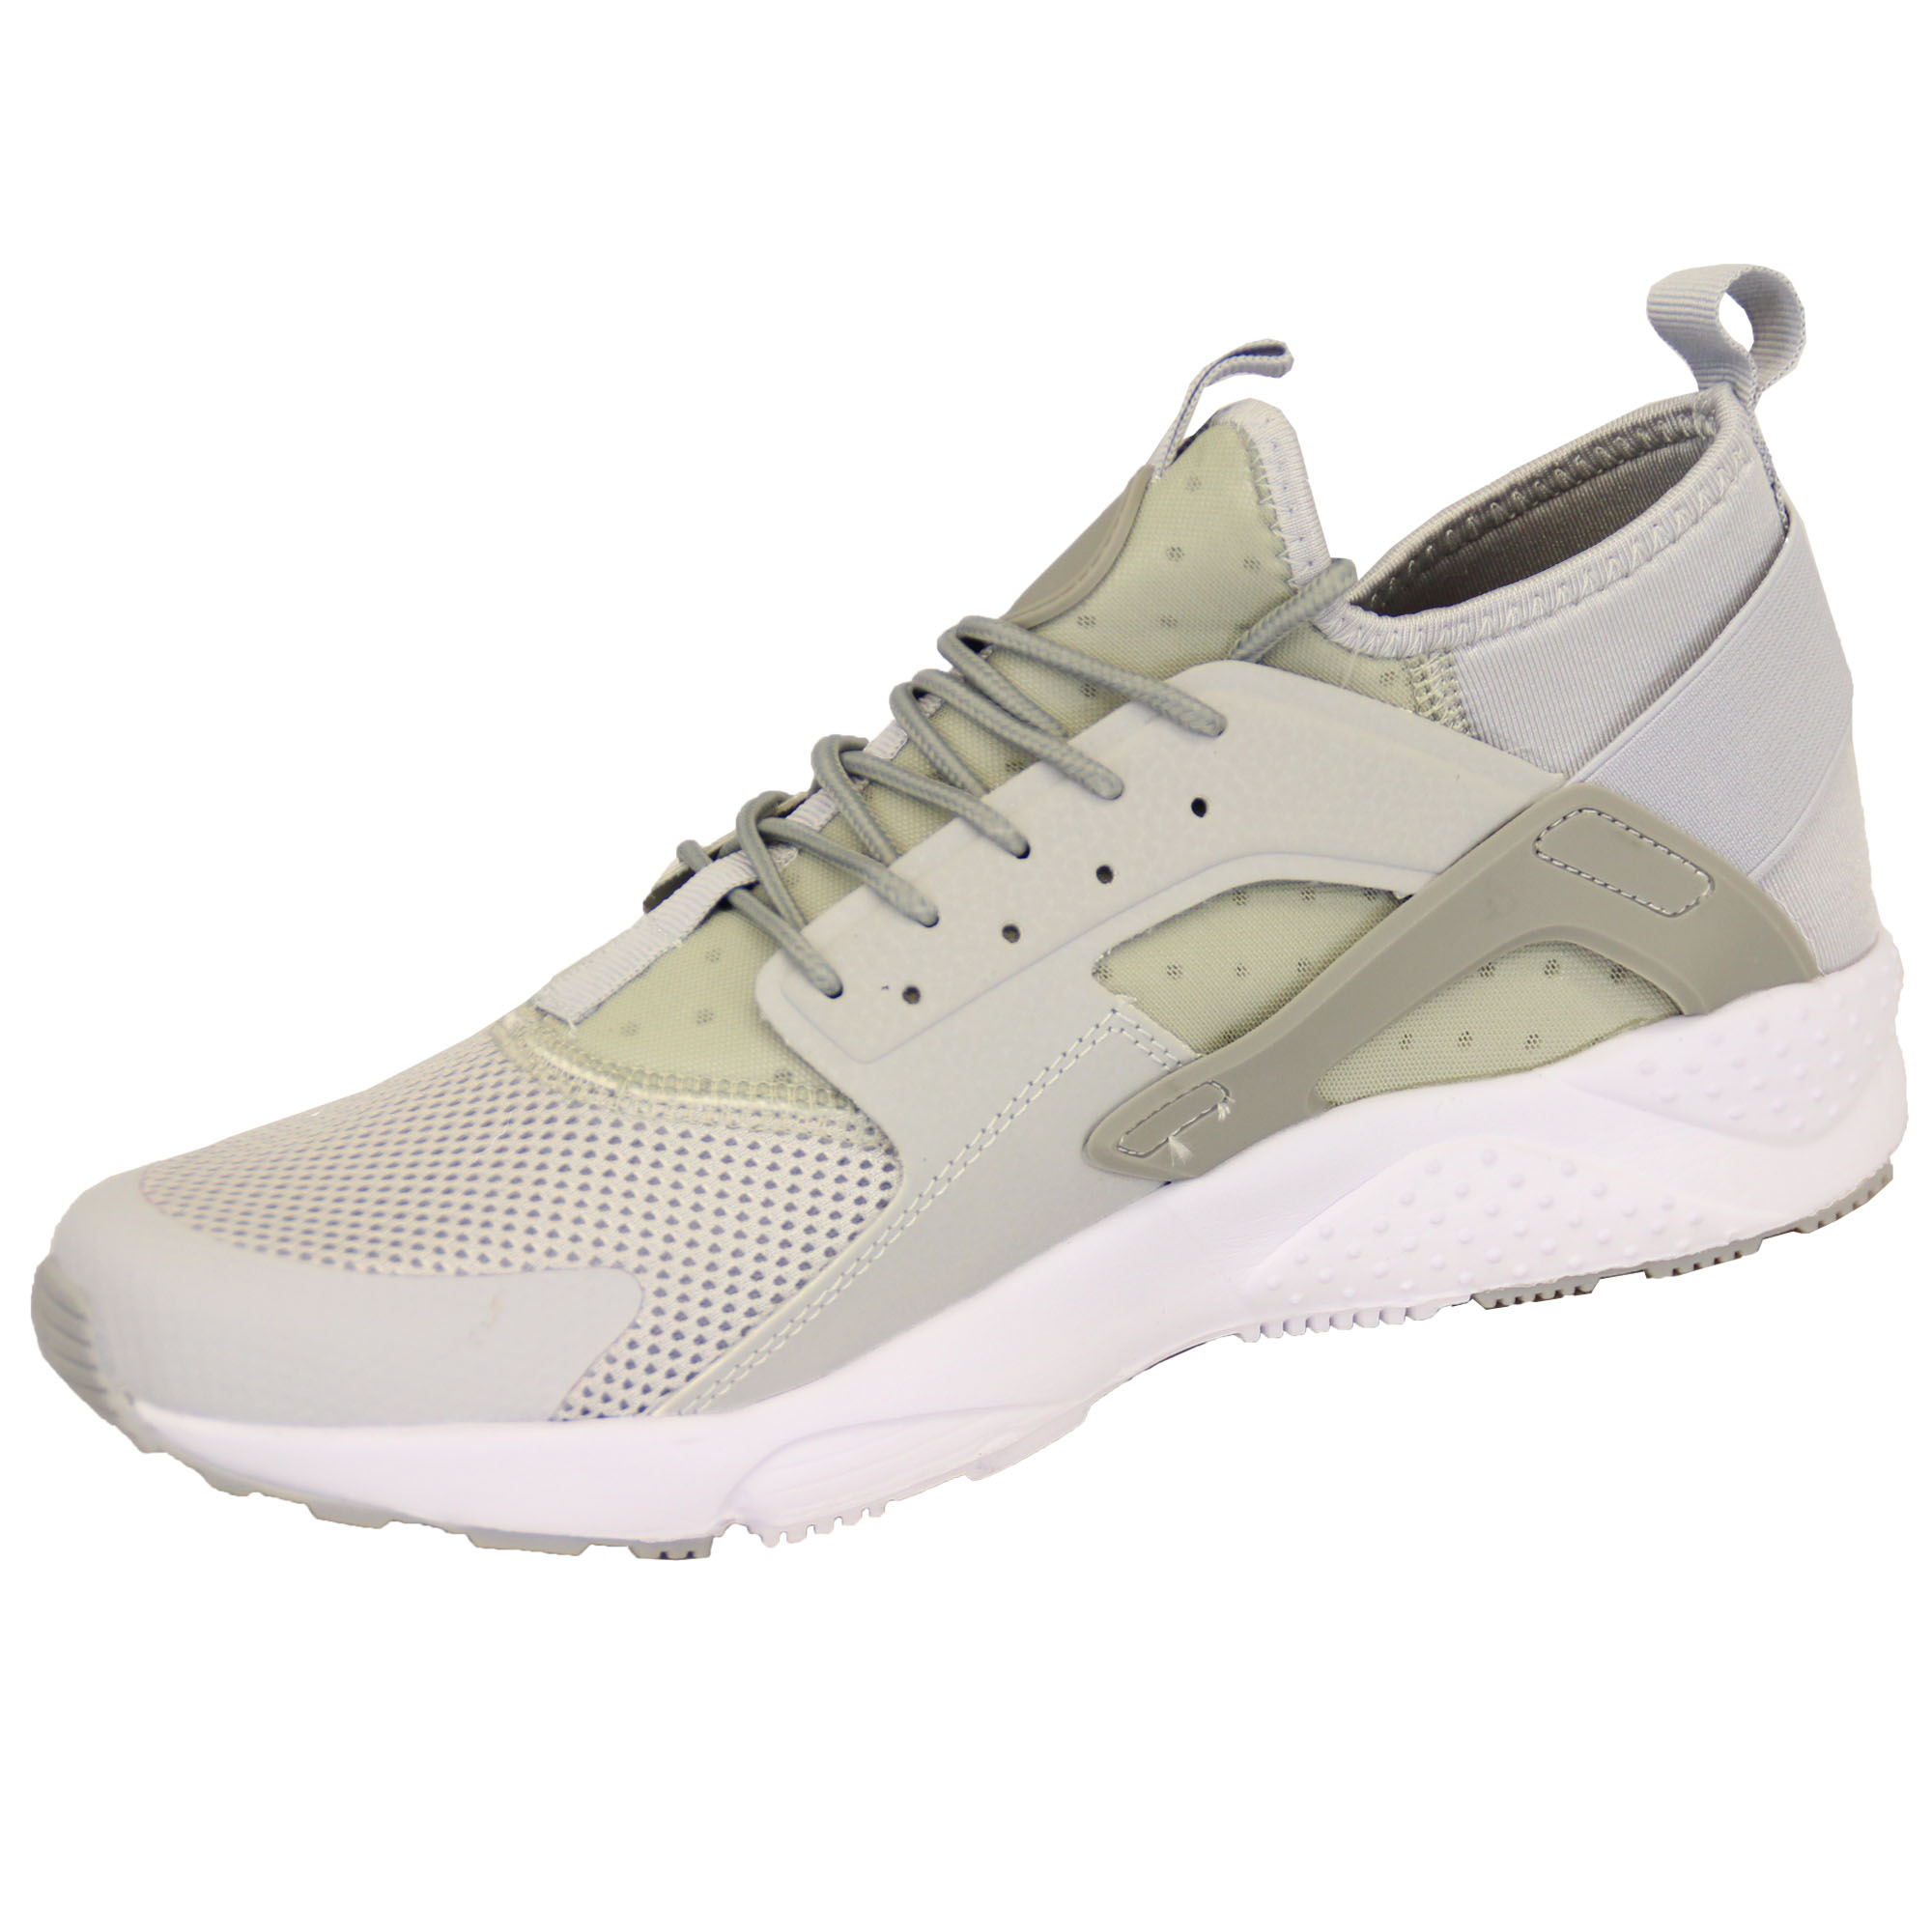 Mens-Trainers-Shoes-Lace-Up-Sneakers-Running-Gym-Sports-Mesh-Casual-Fashion-New thumbnail 3